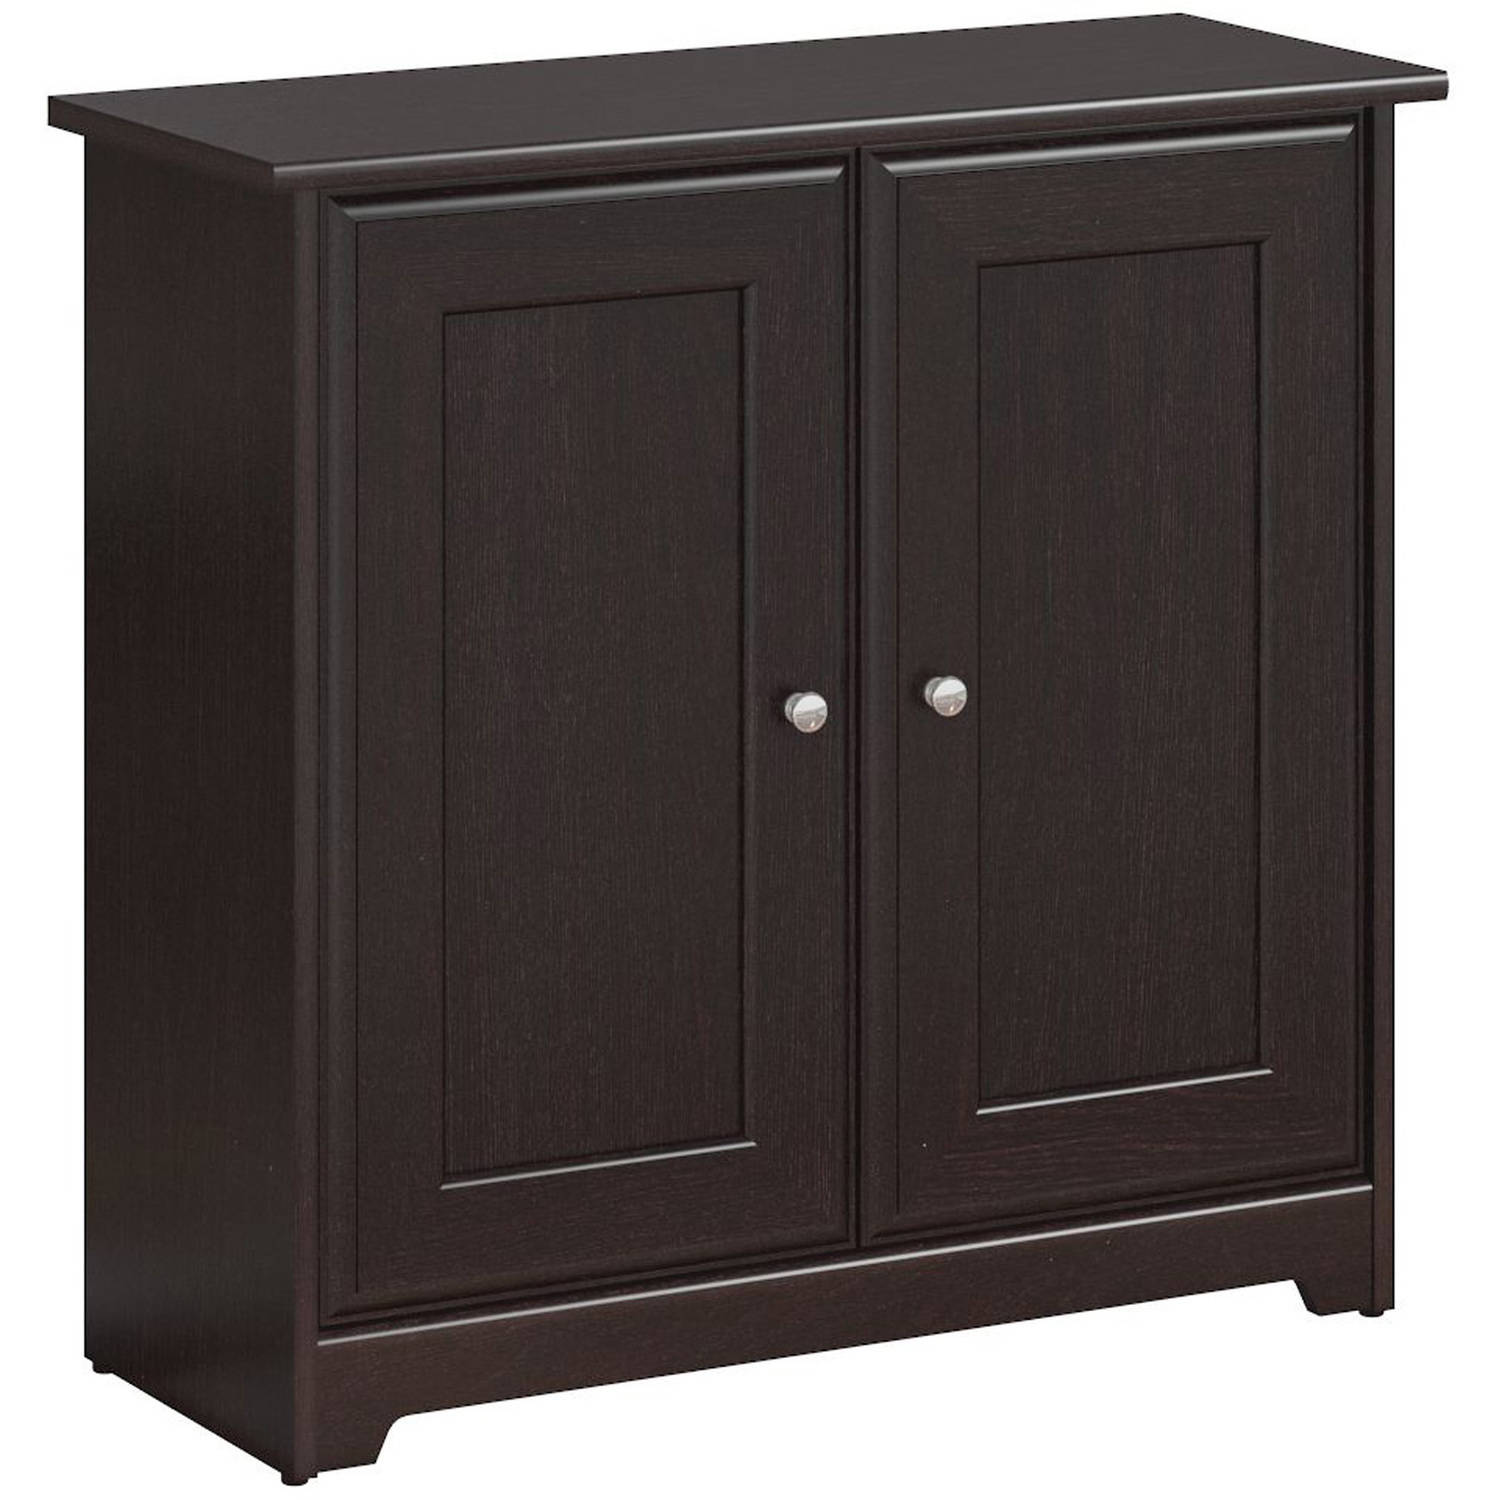 Bush Furniture Cabot Collection 2-Door Low Storage, Espresso Oak